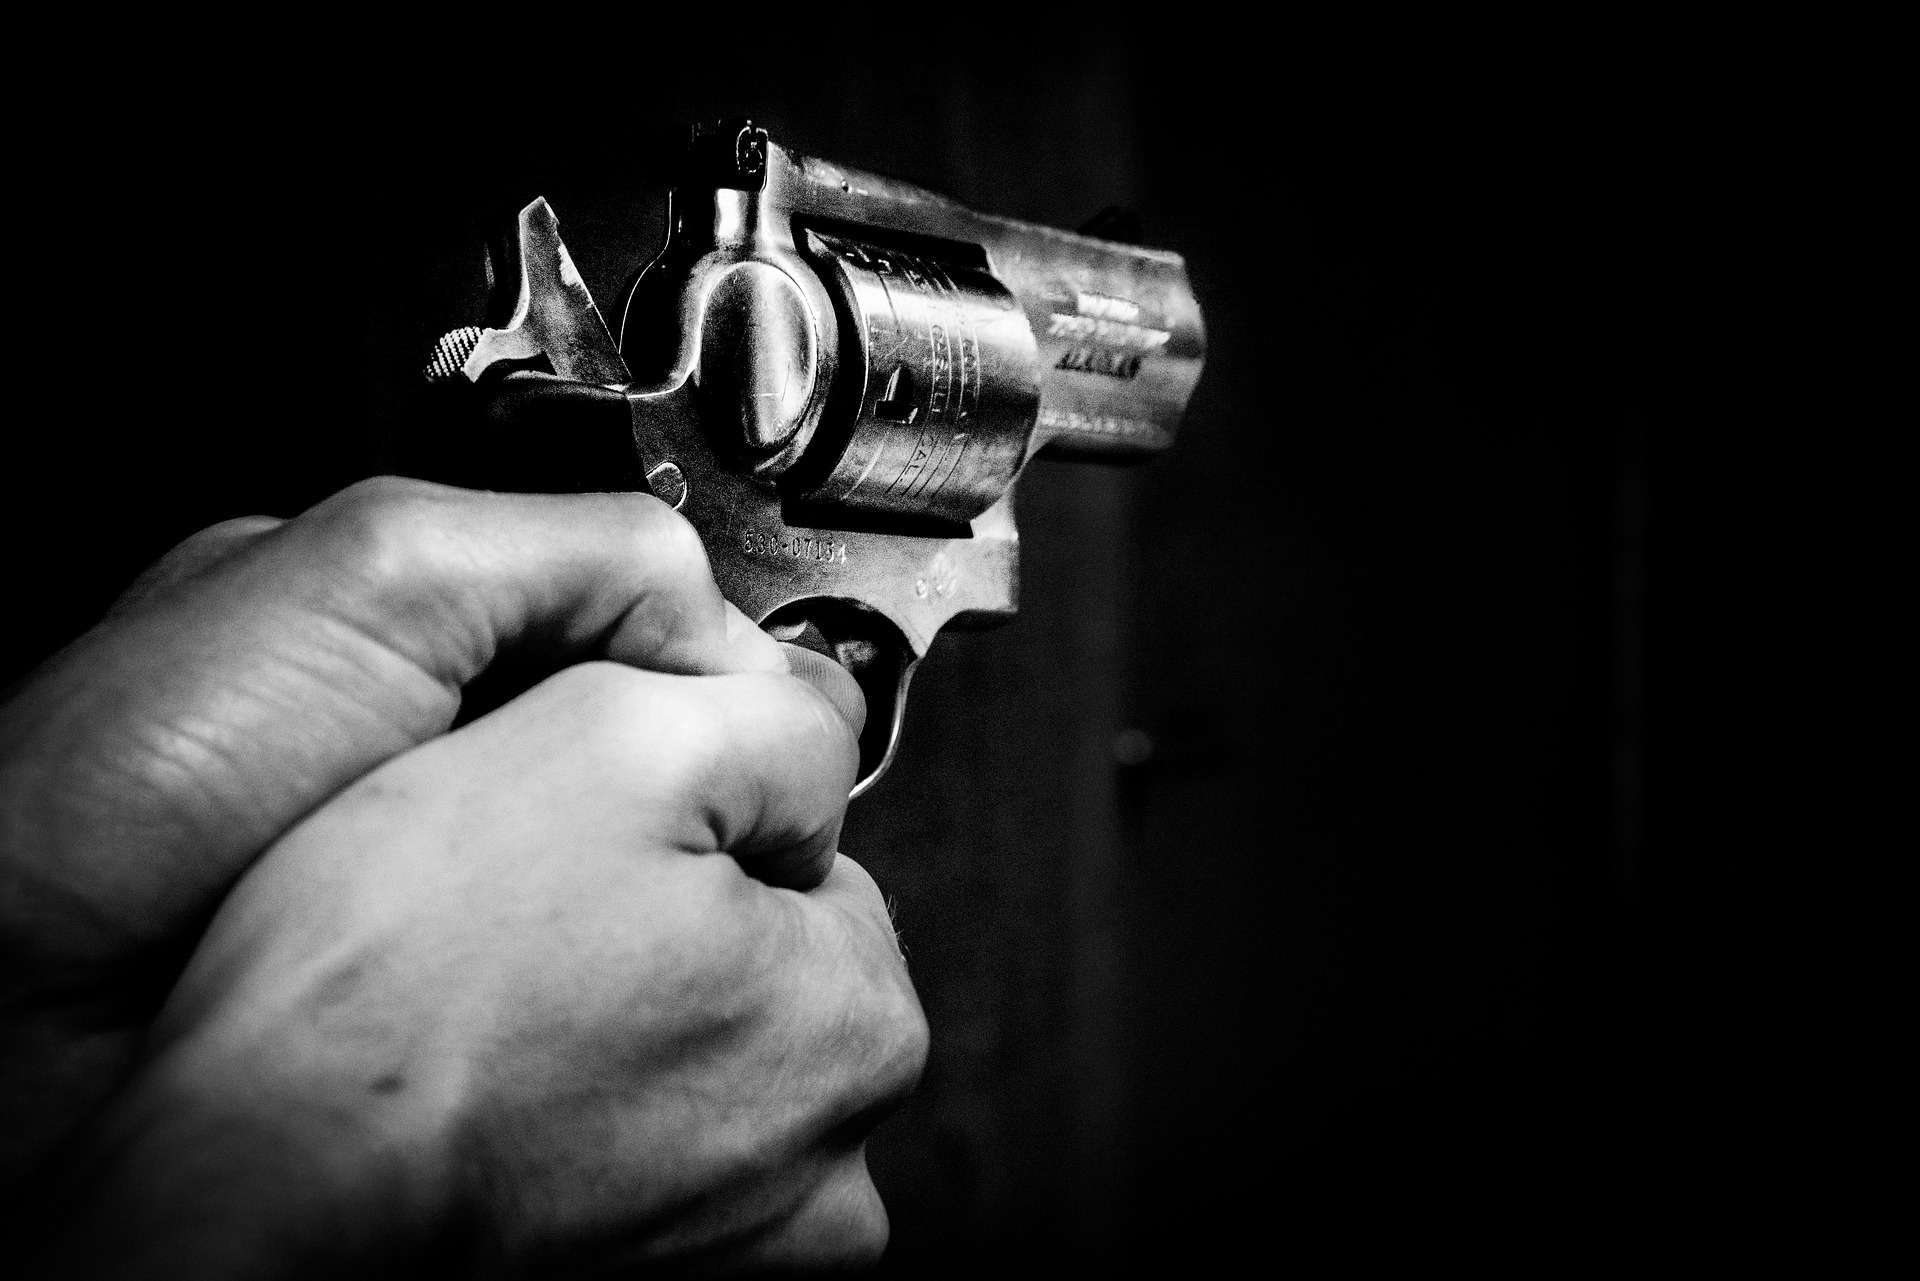 gun in the dark with light on the hands holding it